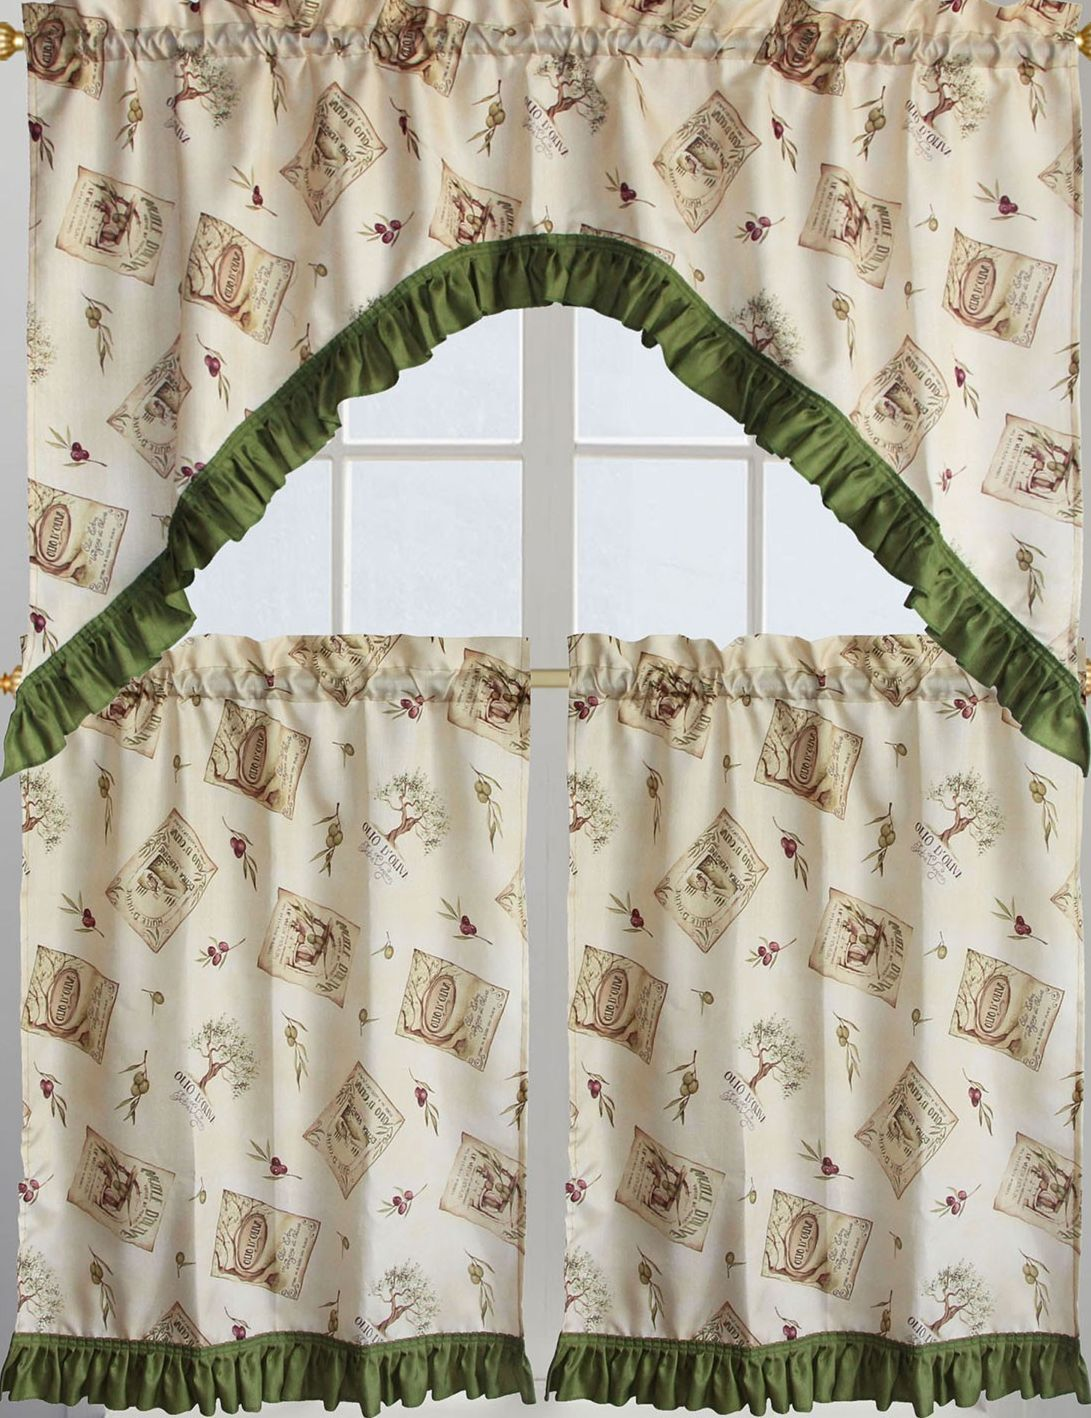 Al Ellis Olives Olive Oil Tuscany Tuscan Kitchen Curtains 56 X 36l Tiers For Sale Online Ebay